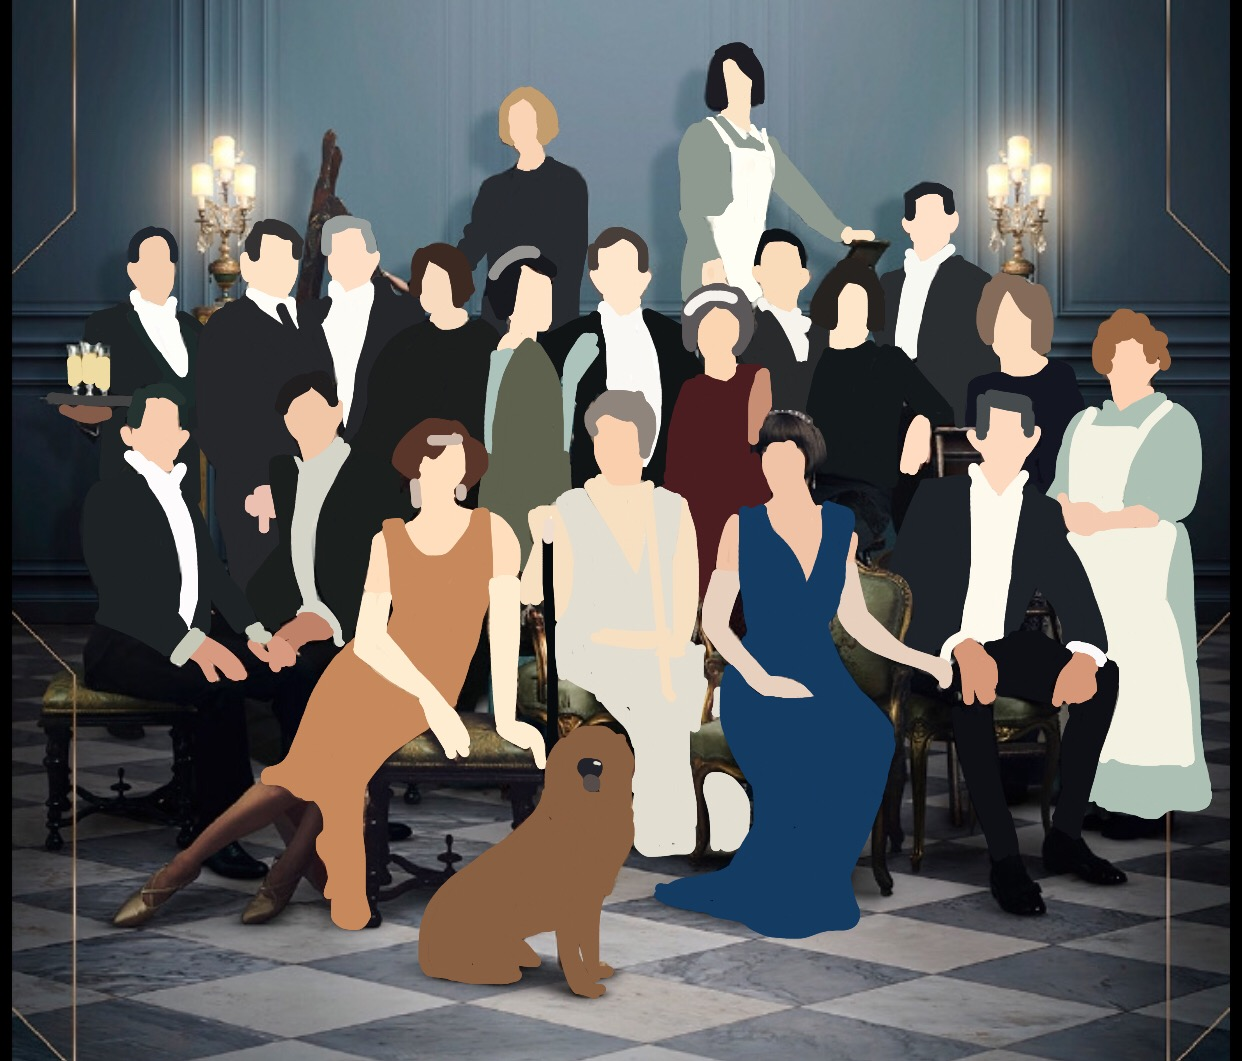 Cartoon Downton Abbey movie poster created by Katie Kerrigan.